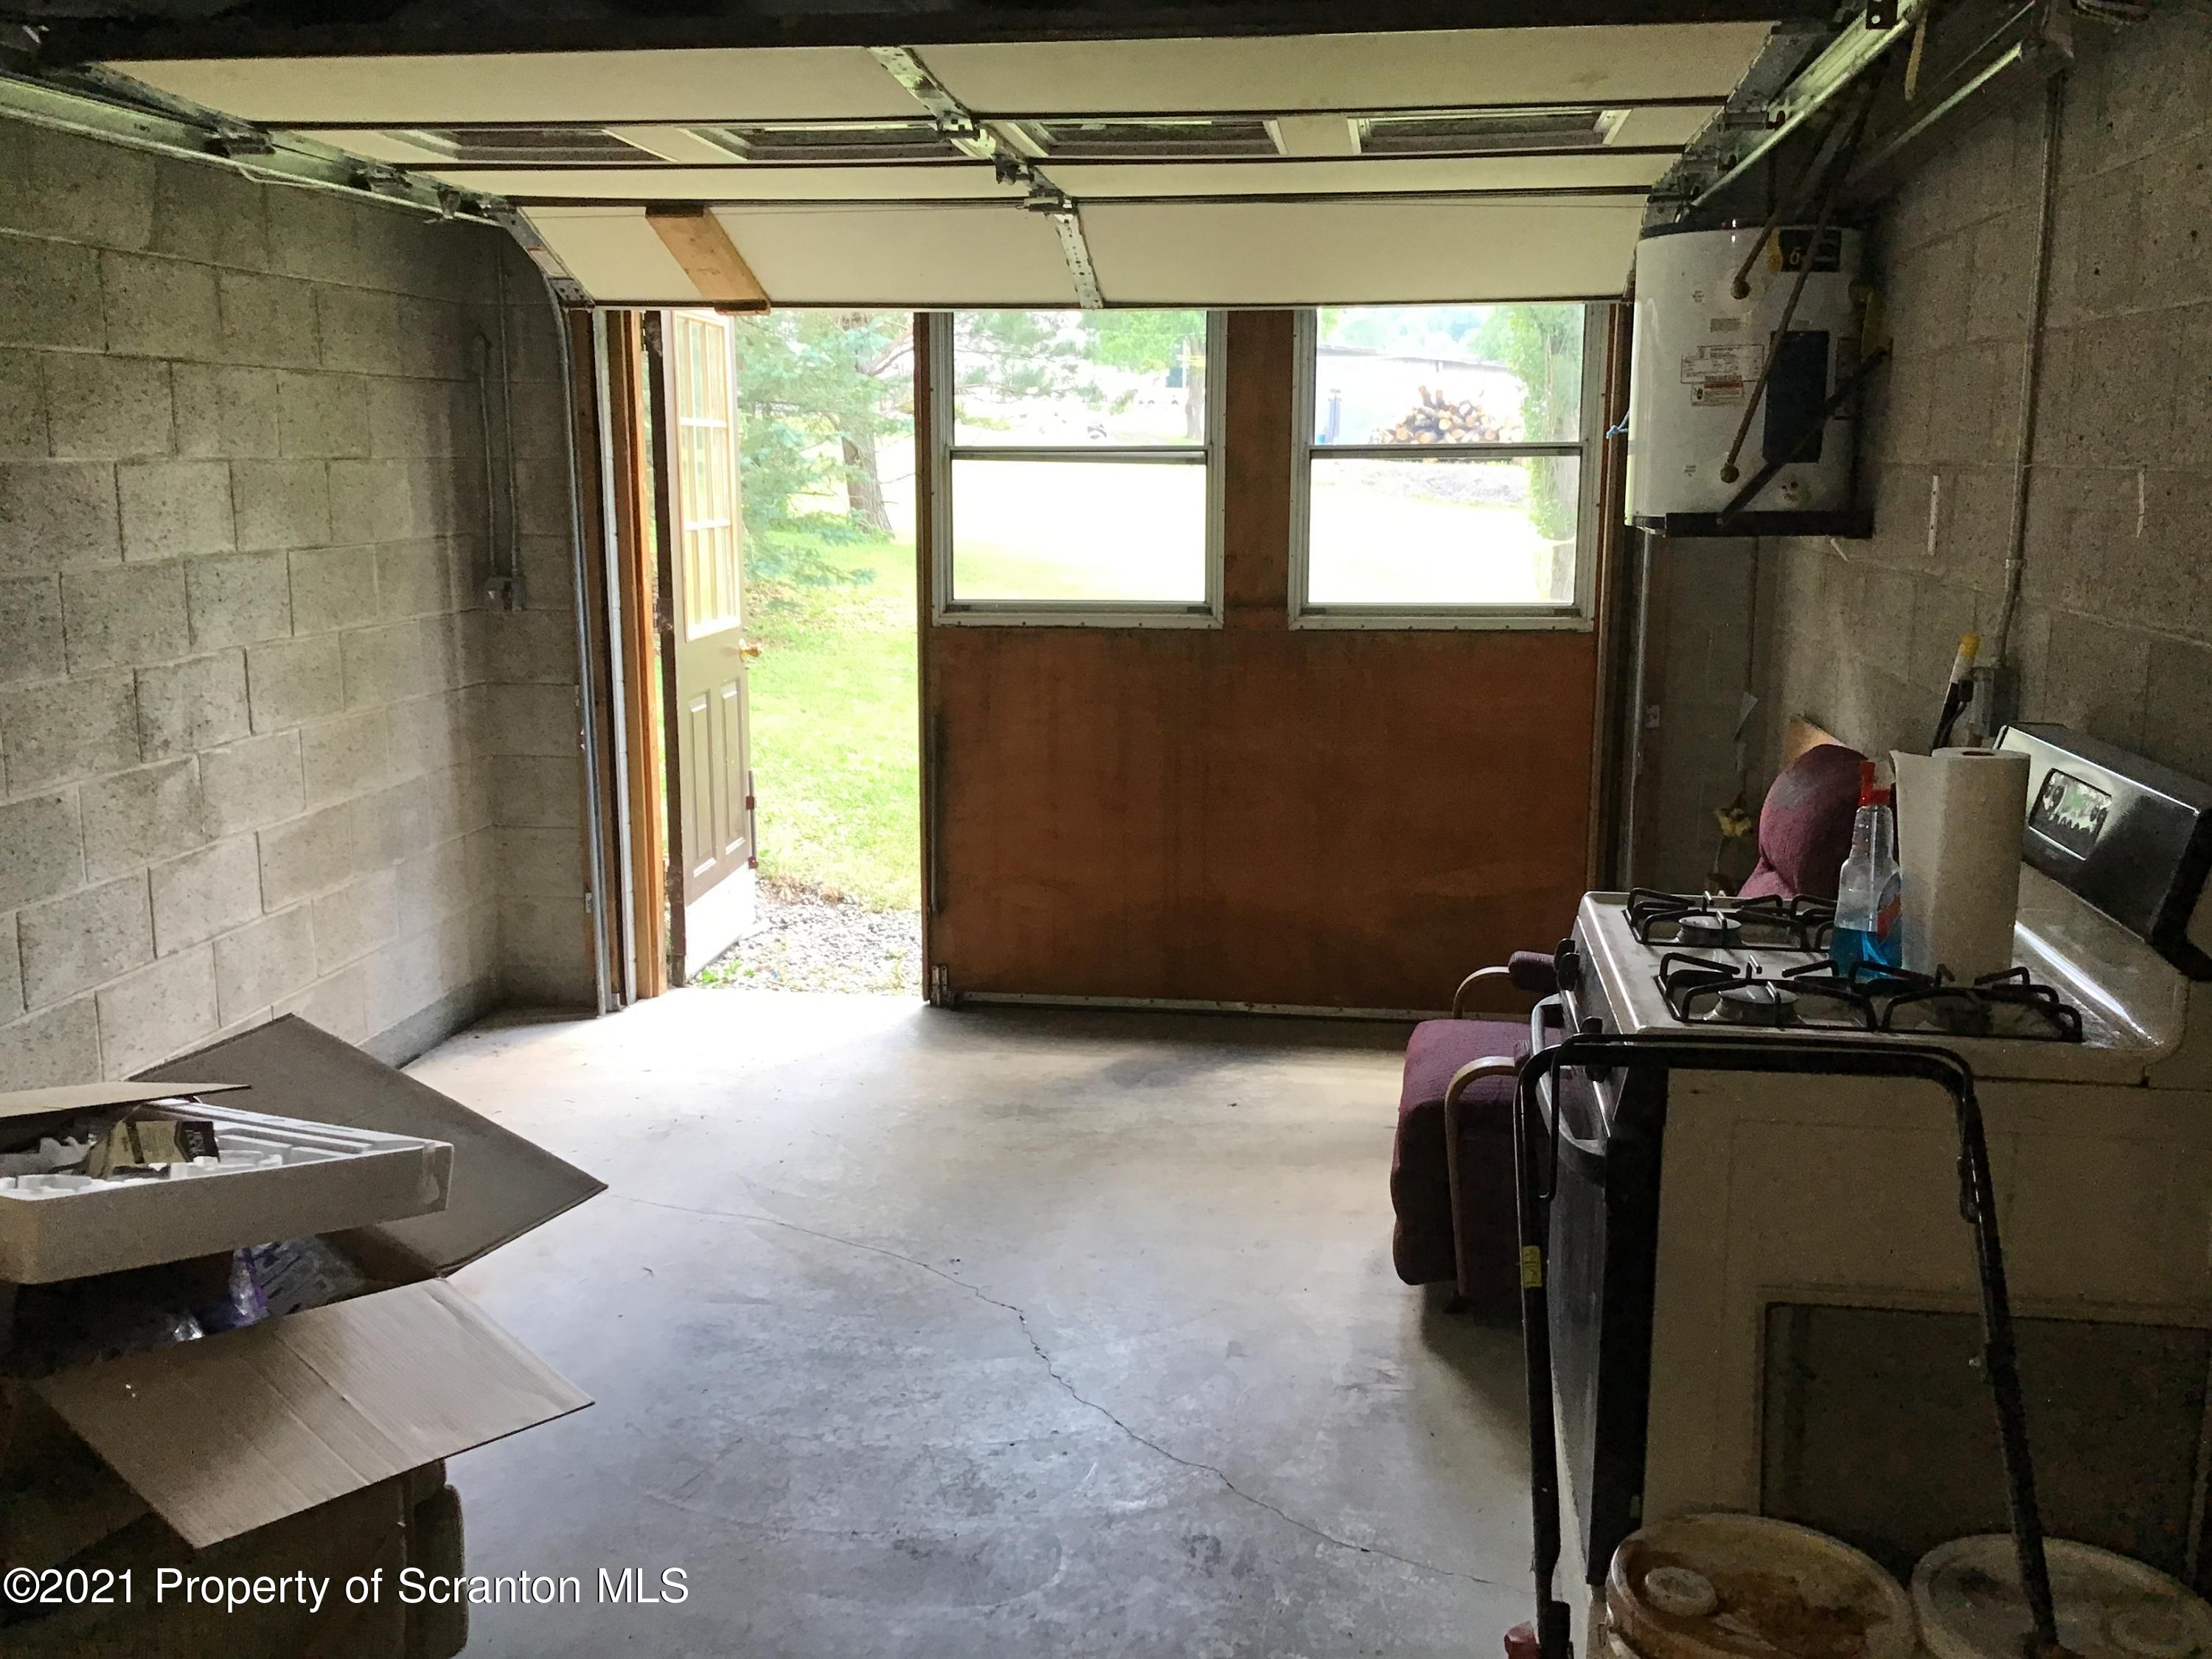 11694 State Route 3004, Springville, Pennsylvania 18844, 2 Bedrooms Bedrooms, 3 Rooms Rooms,1 BathroomBathrooms,Single Family,For Sale,State Route 3004,21-2843